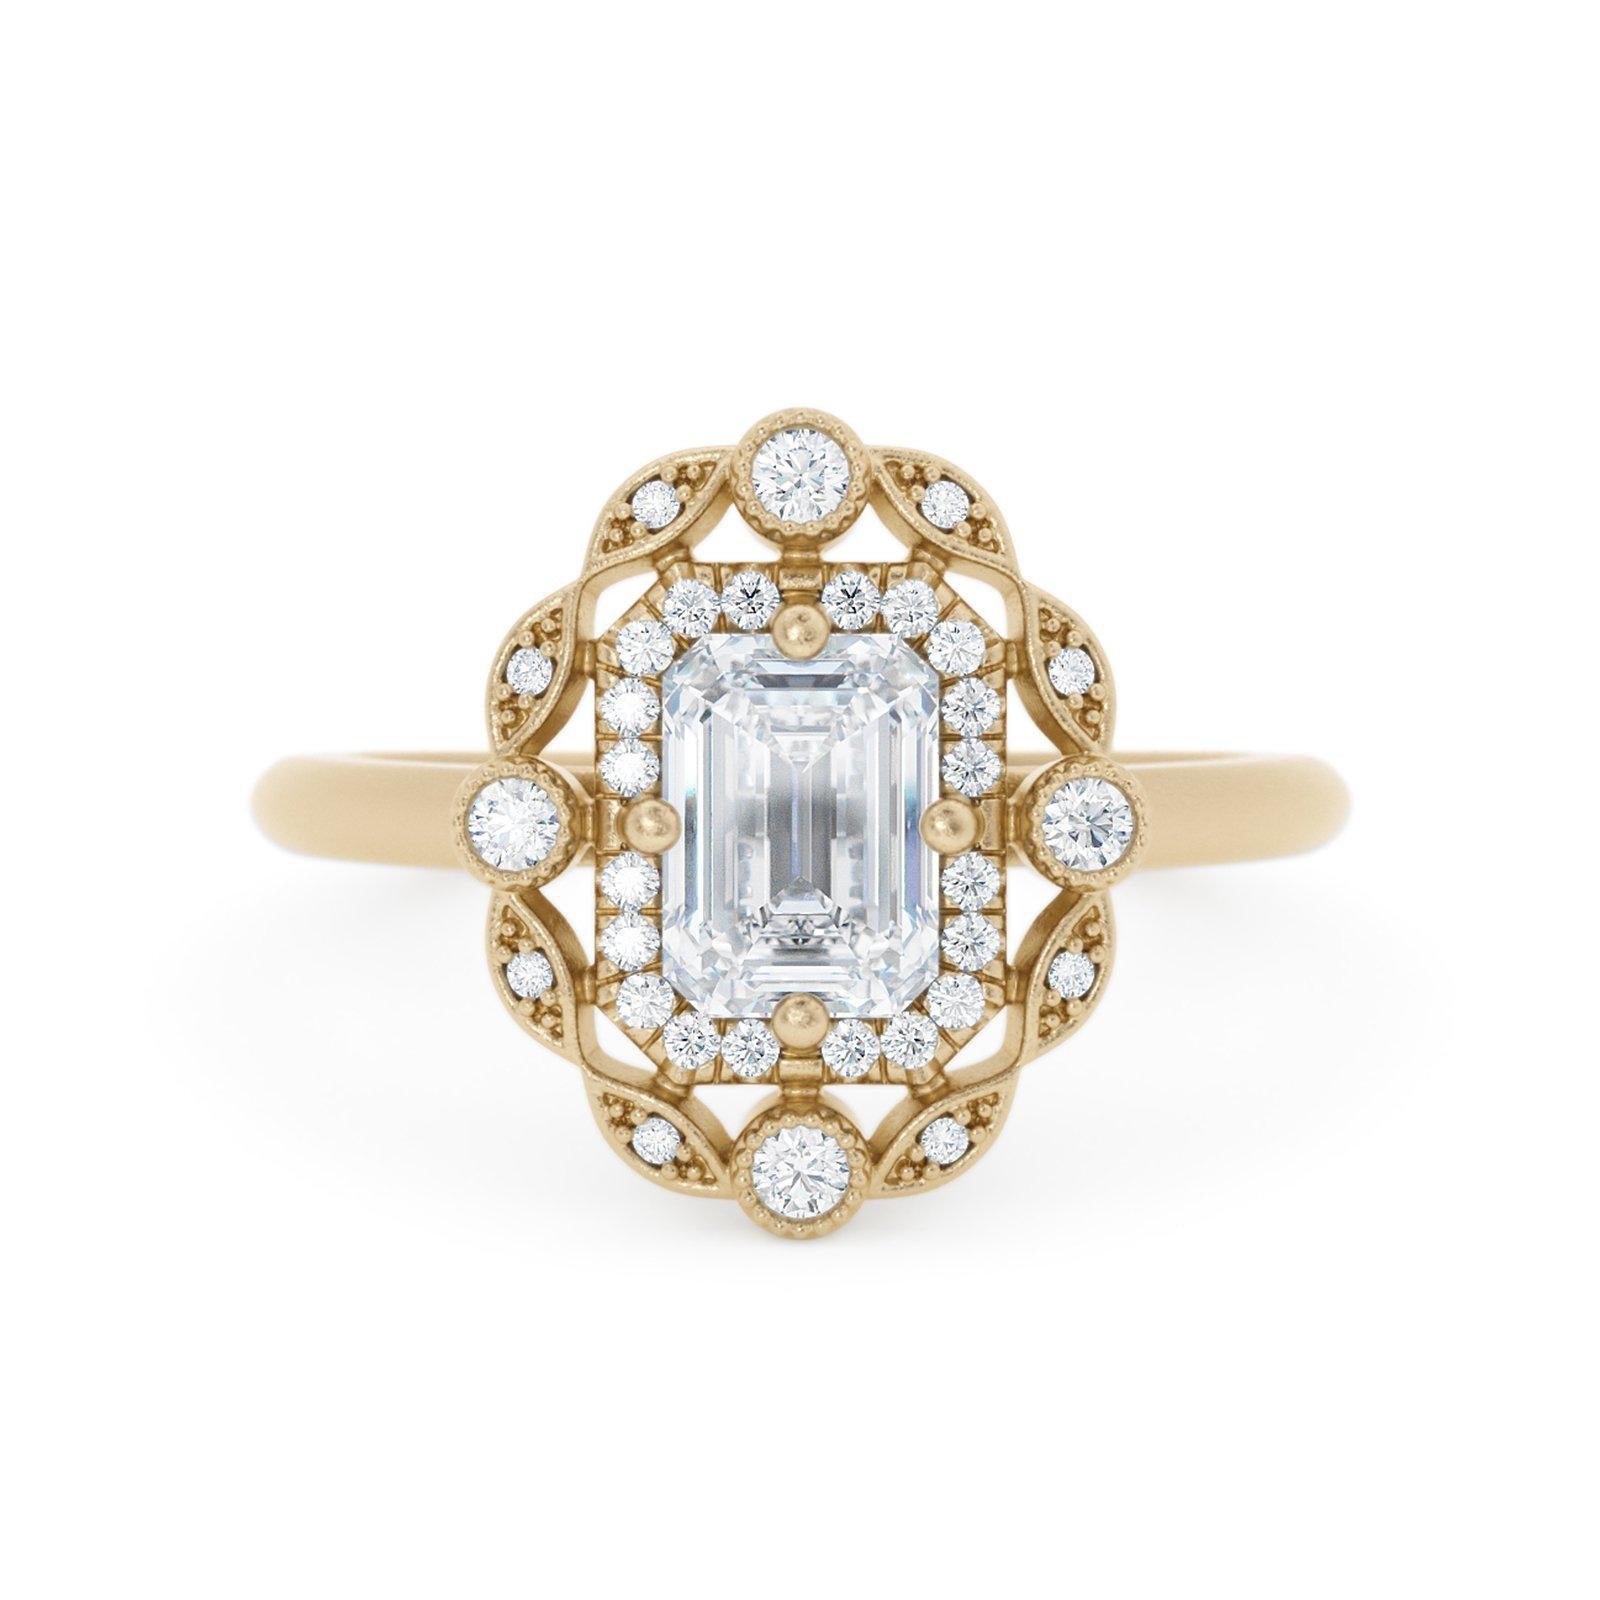 Mavis Double Halo Diamond Ring Emerald Cut